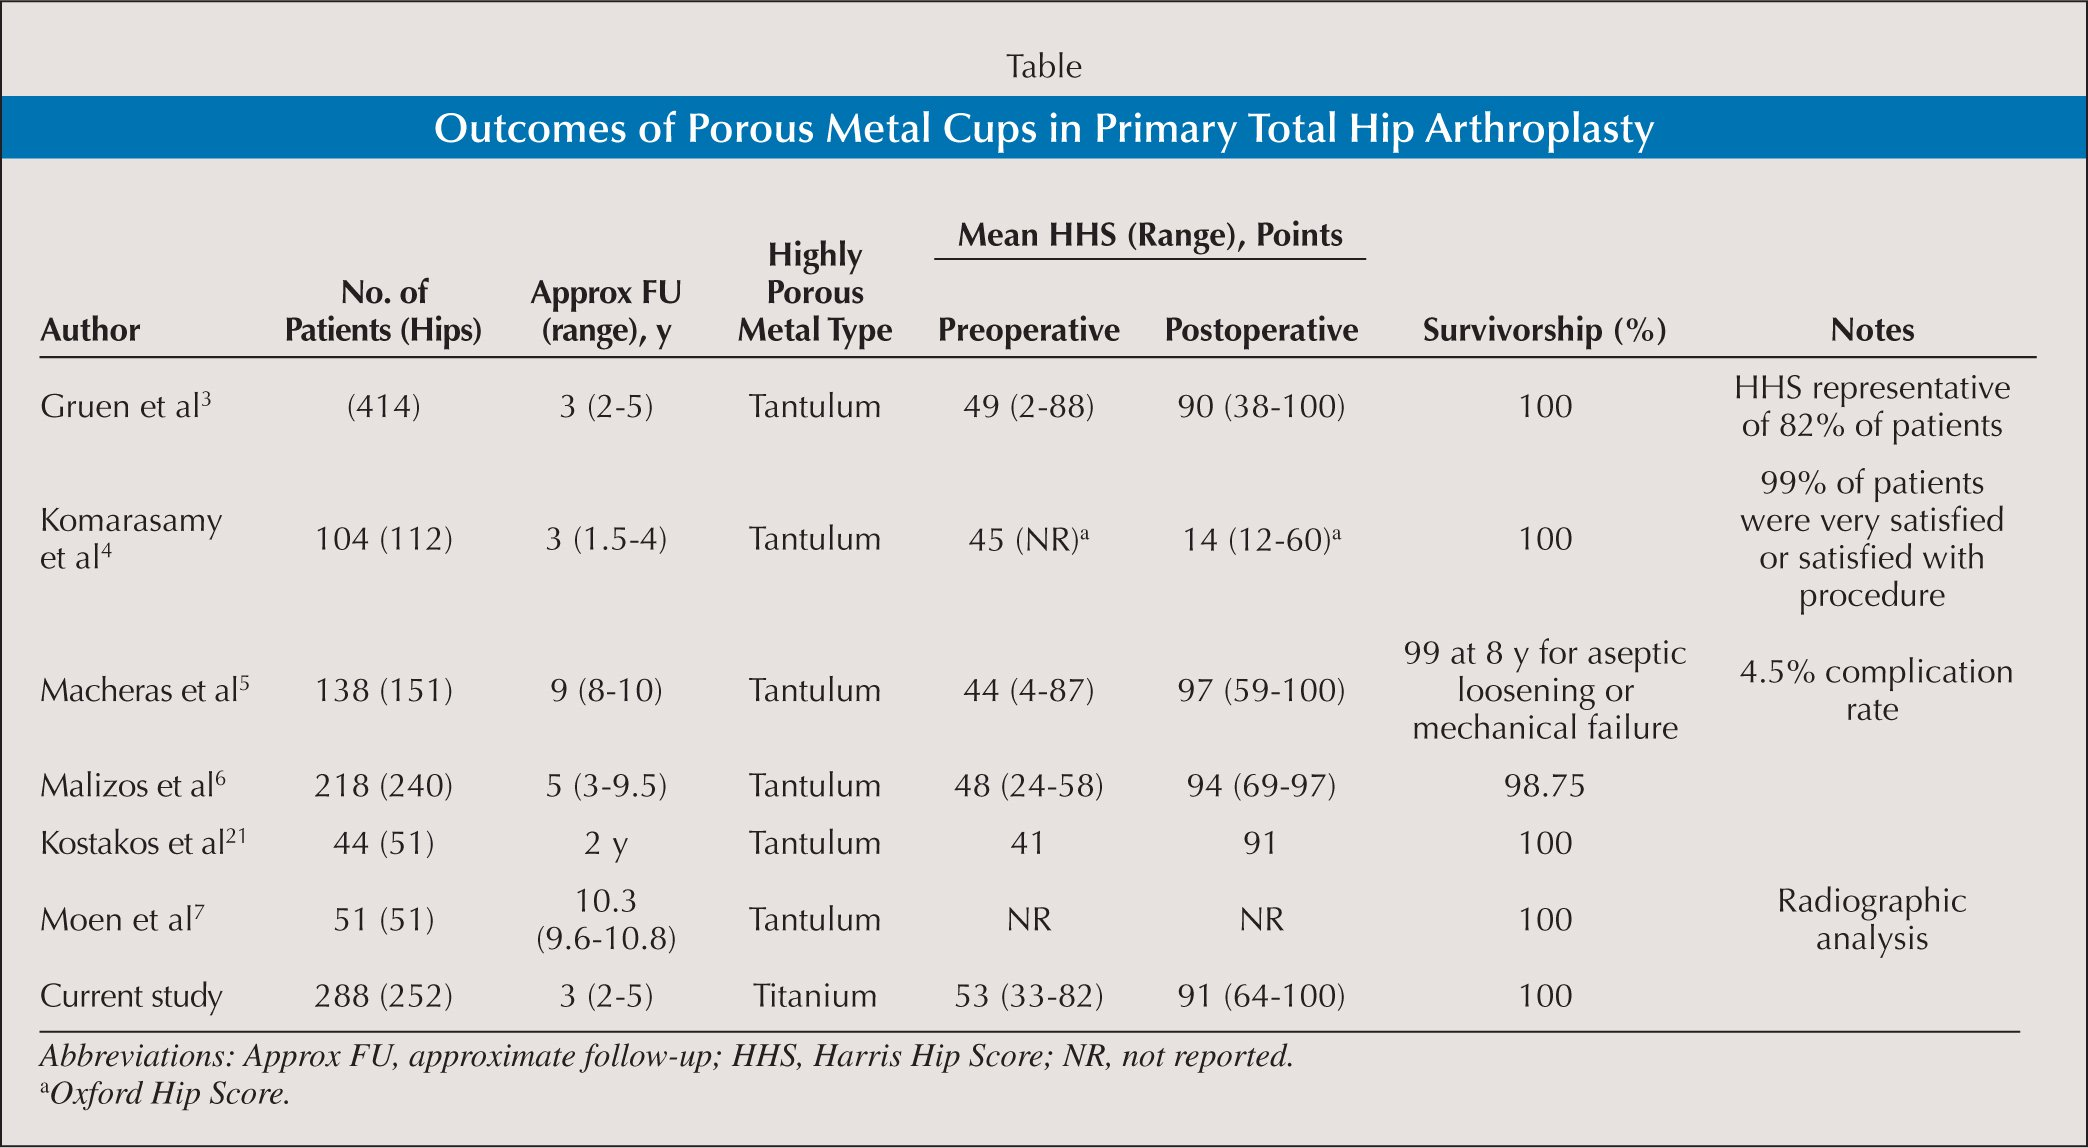 Outcomes of Porous Metal Cups in Primary Total Hip Arthroplasty